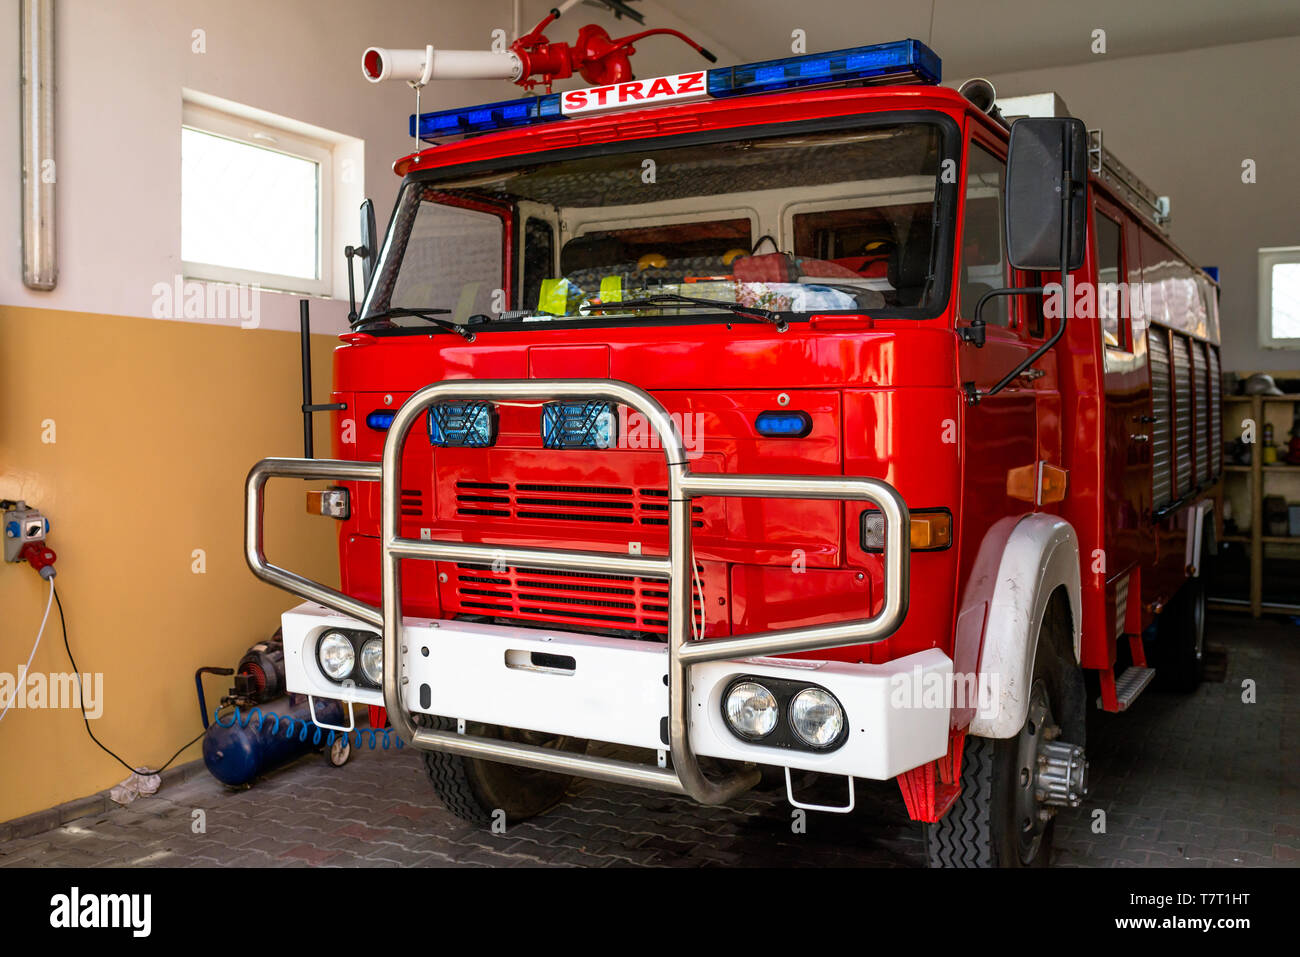 The front of the truck of an old Polish fire truck with visible blue light signals, water cannon and the Polish word 'STRAZ' translated into English ' - Stock Image